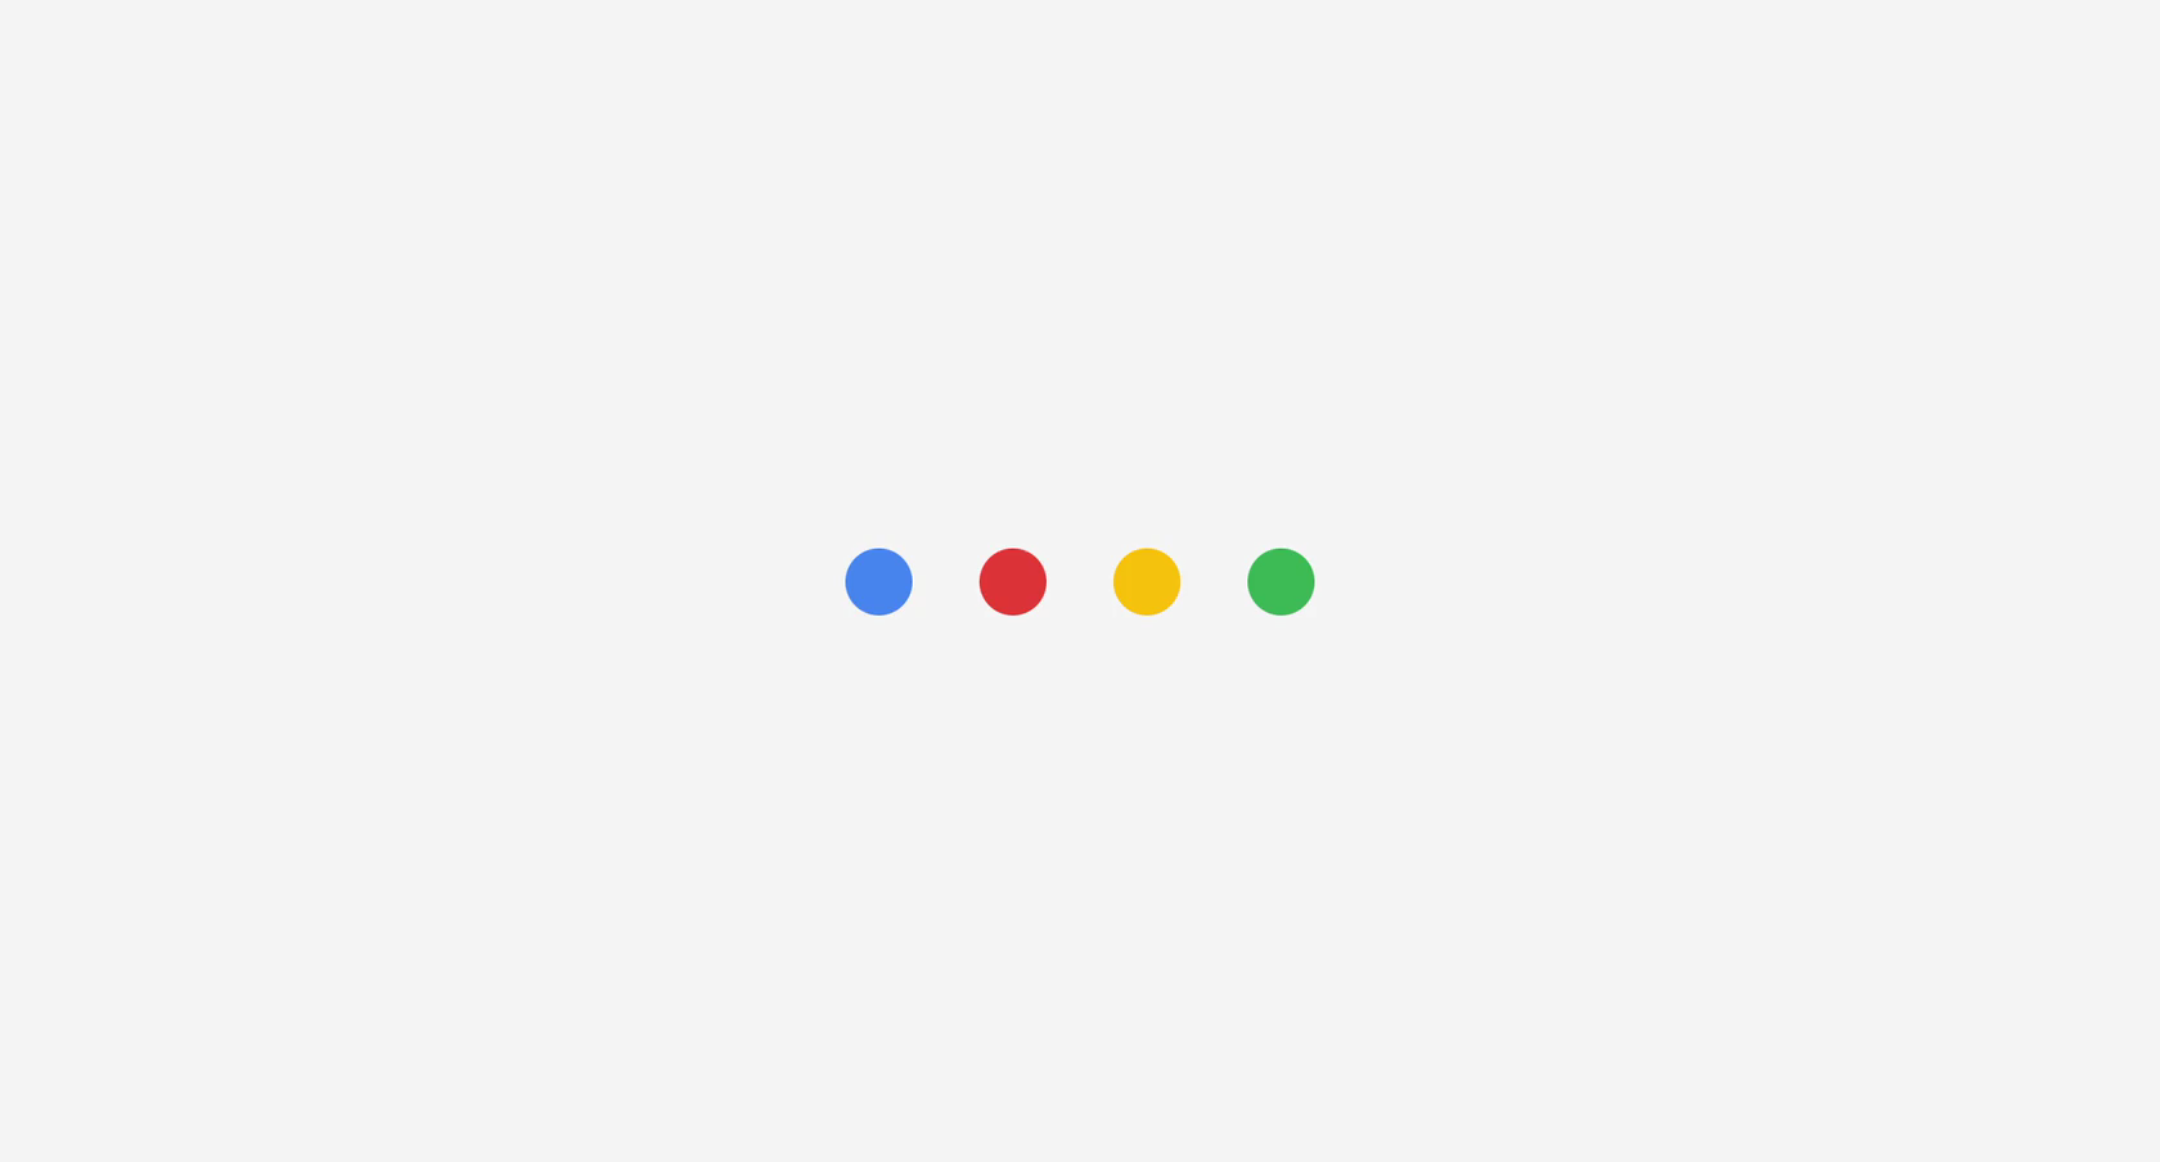 Small google symbol for Goodl